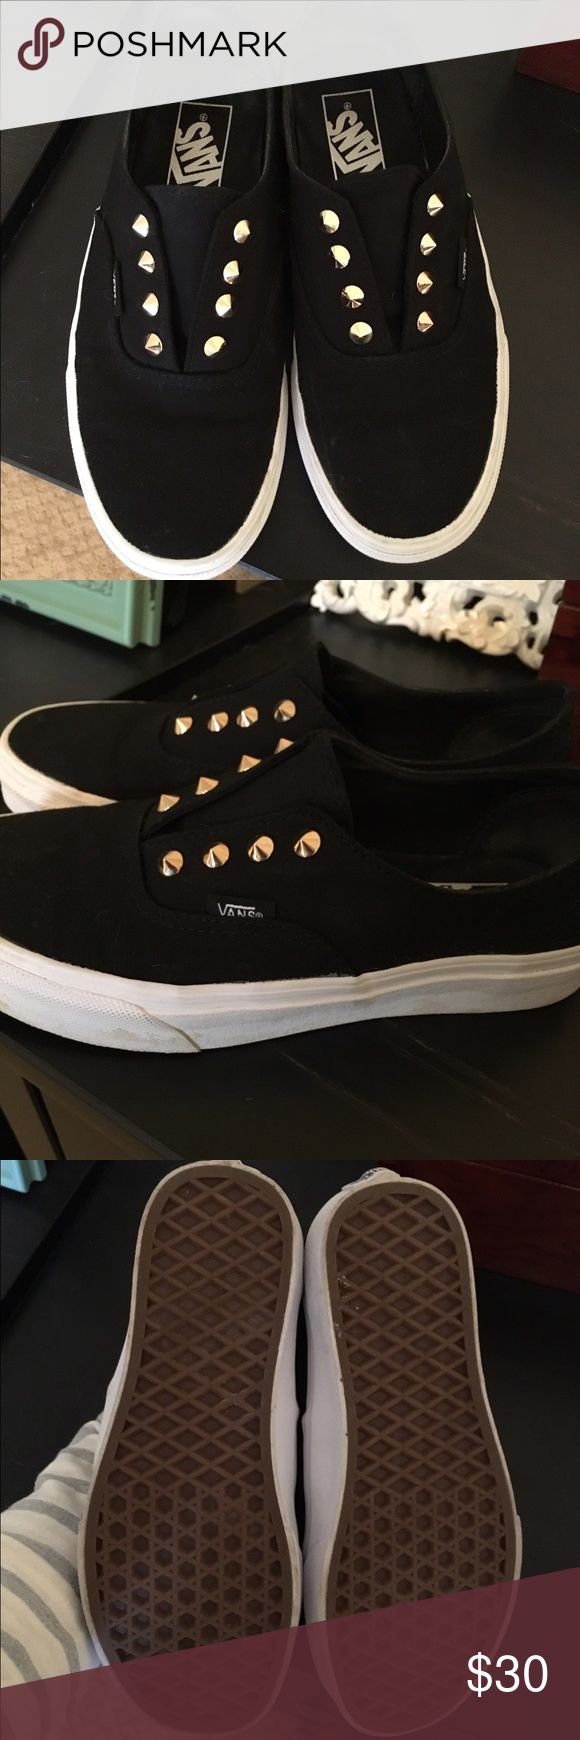 Studded Vans Slip Ons Like-new condition - the only size available was a half size too small for me and I bought them anyway, but they're just too small 😫 worn a couple of times for an hour or so, but in basically new condition. So sad to see these go! Gold spike studs, slip on styling, canvas upper. Vans Shoes Sneakers